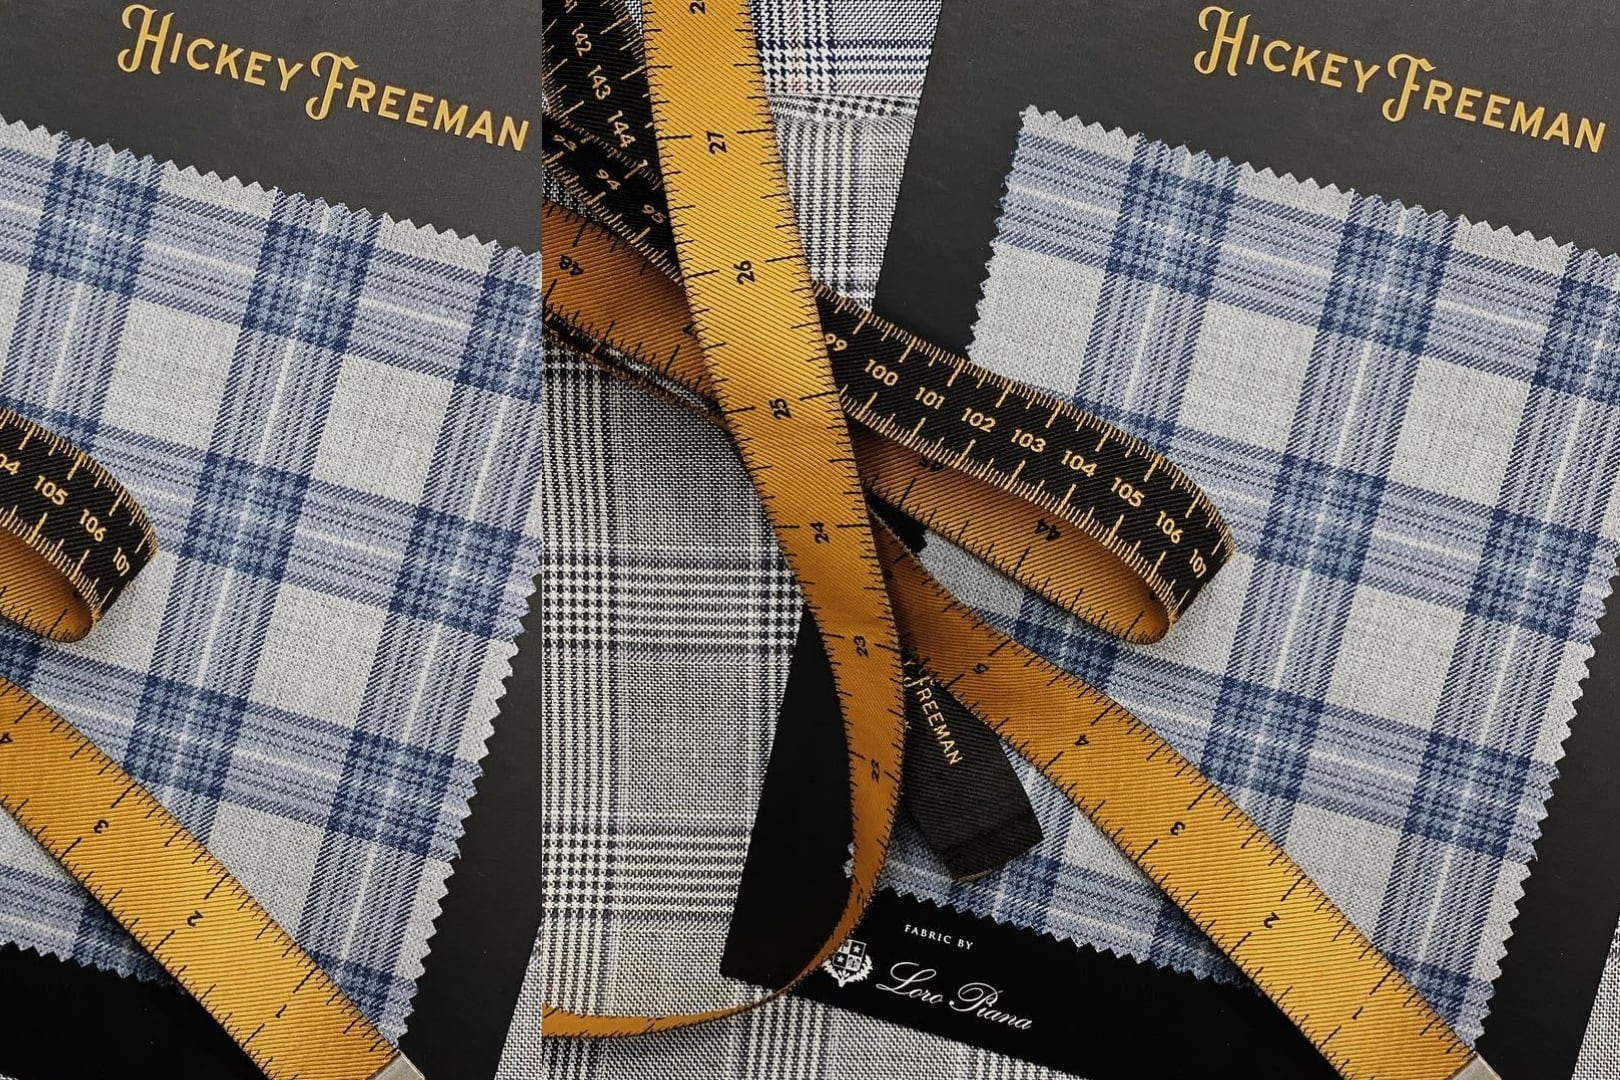 Save 20% on Hickey Freeman